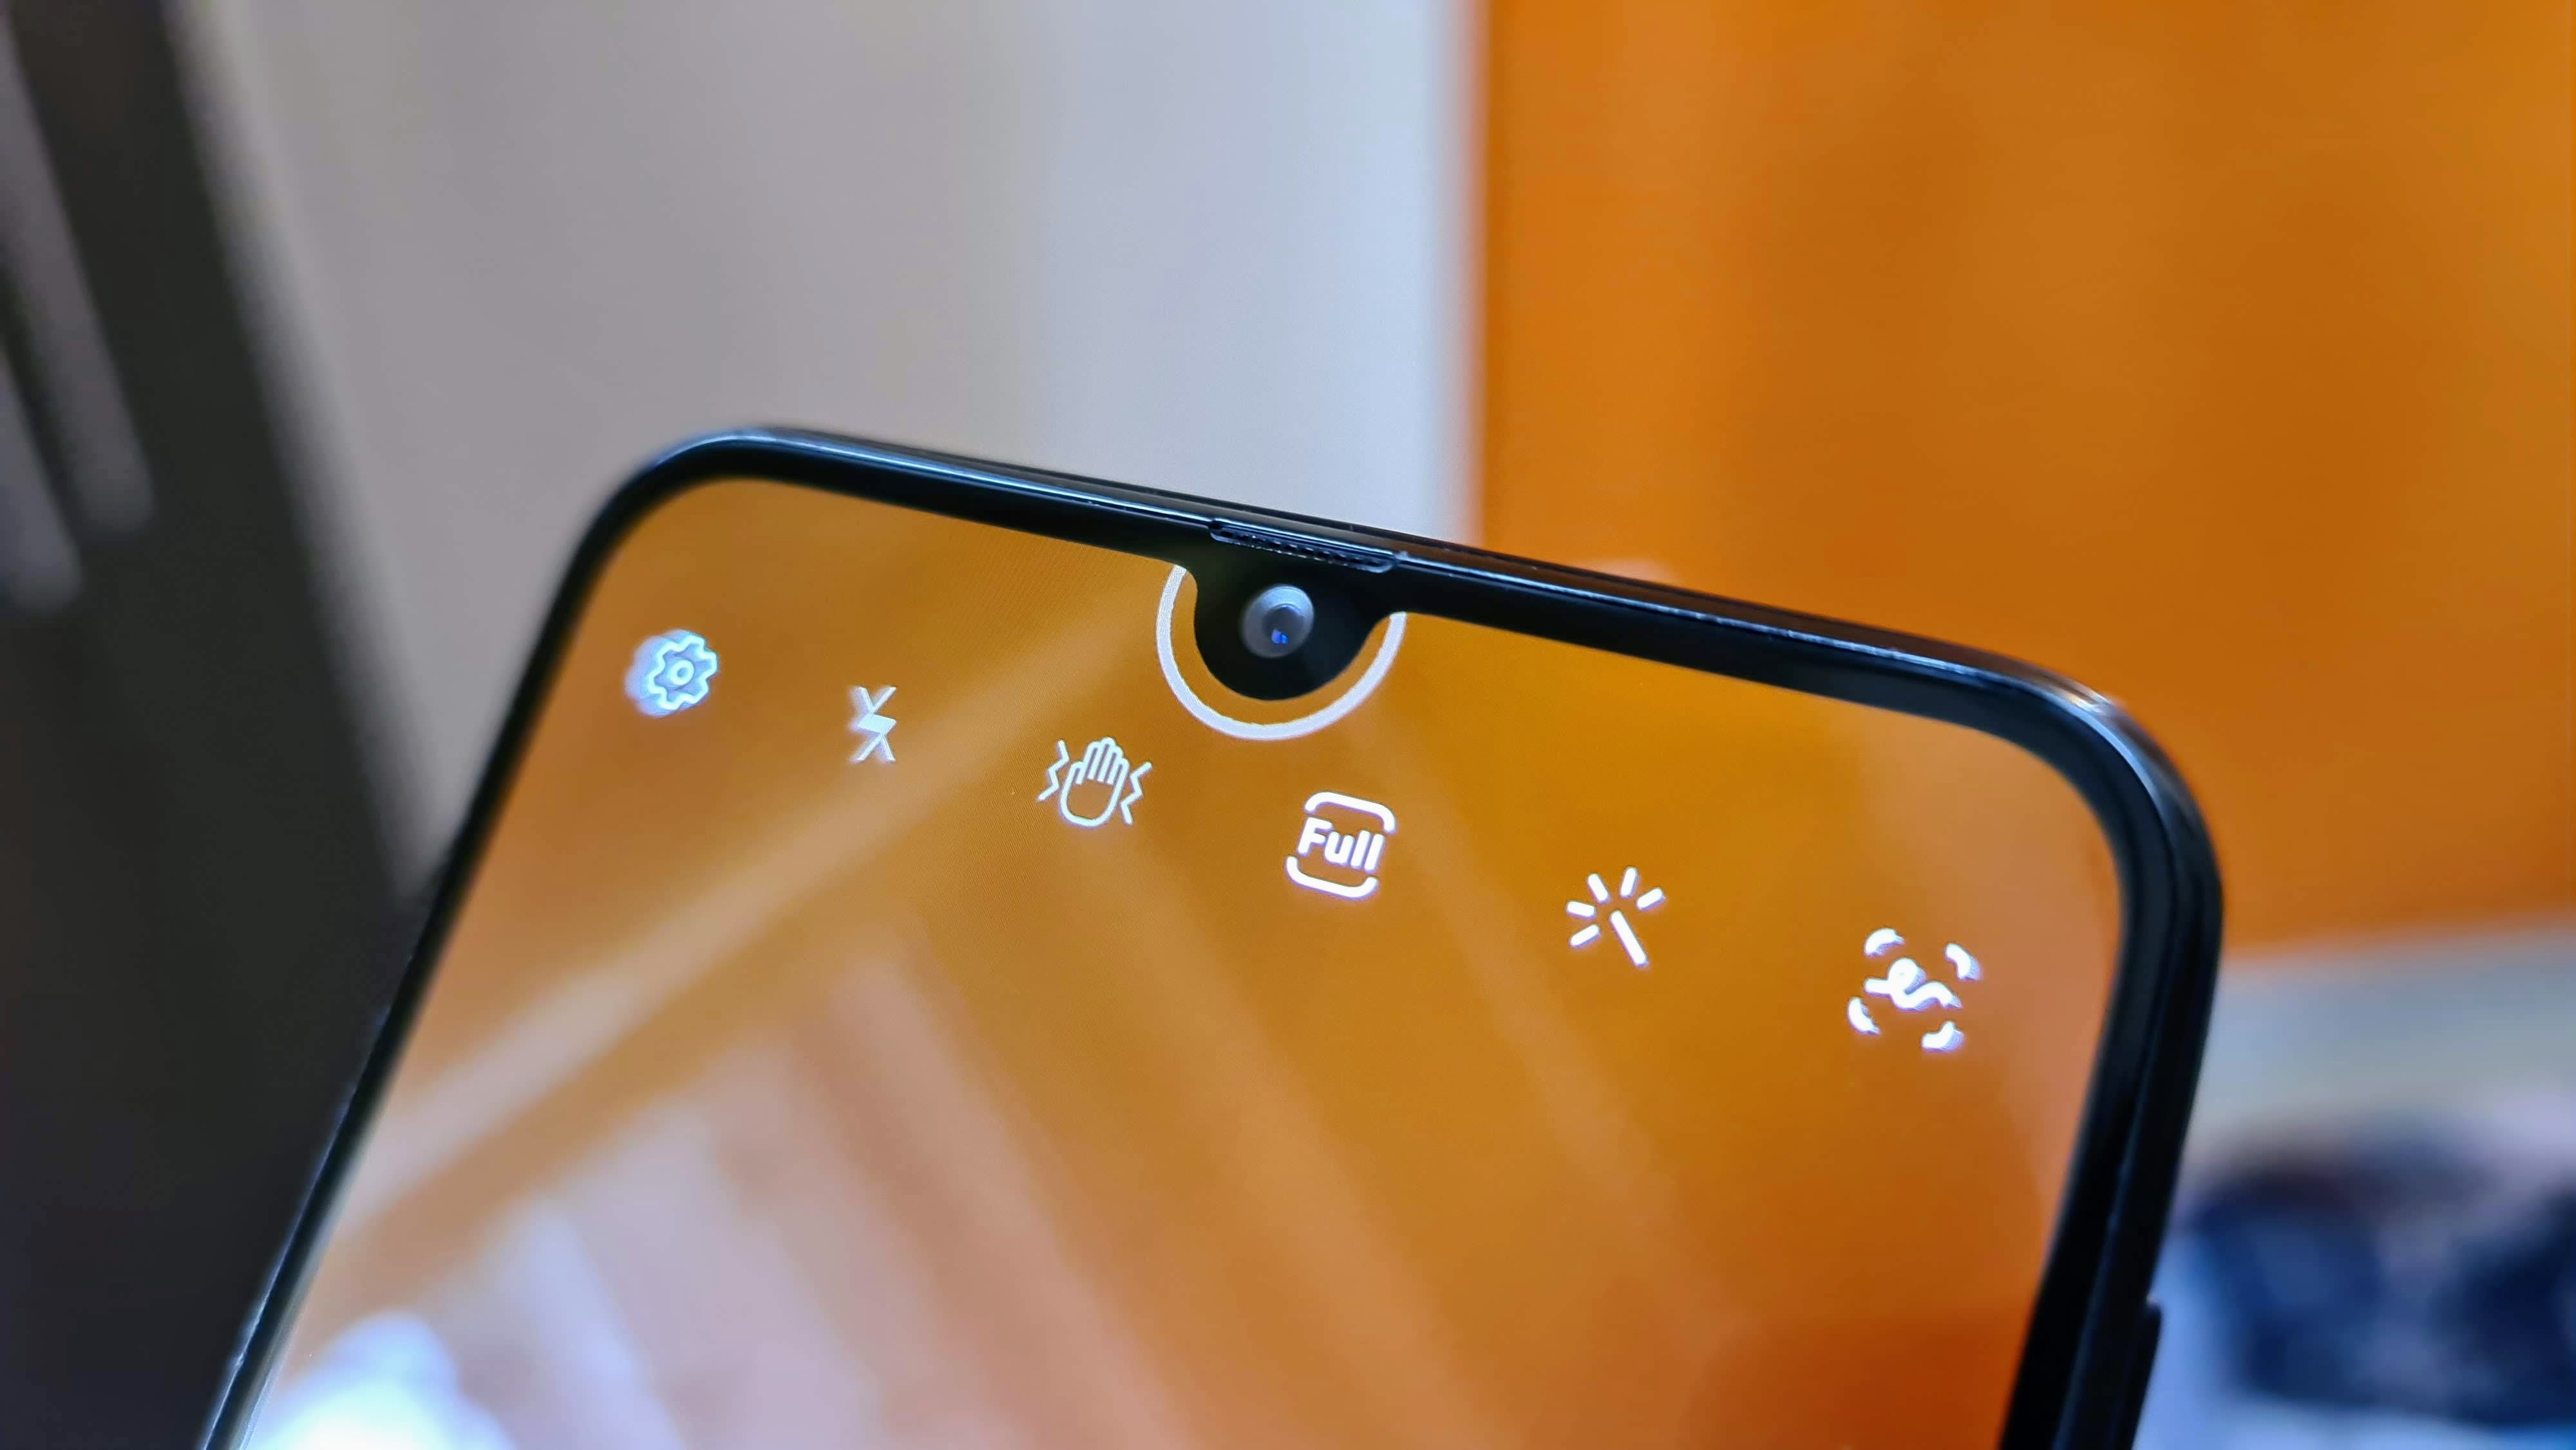 There is a 20-megapixel front-facing camera for selfies.